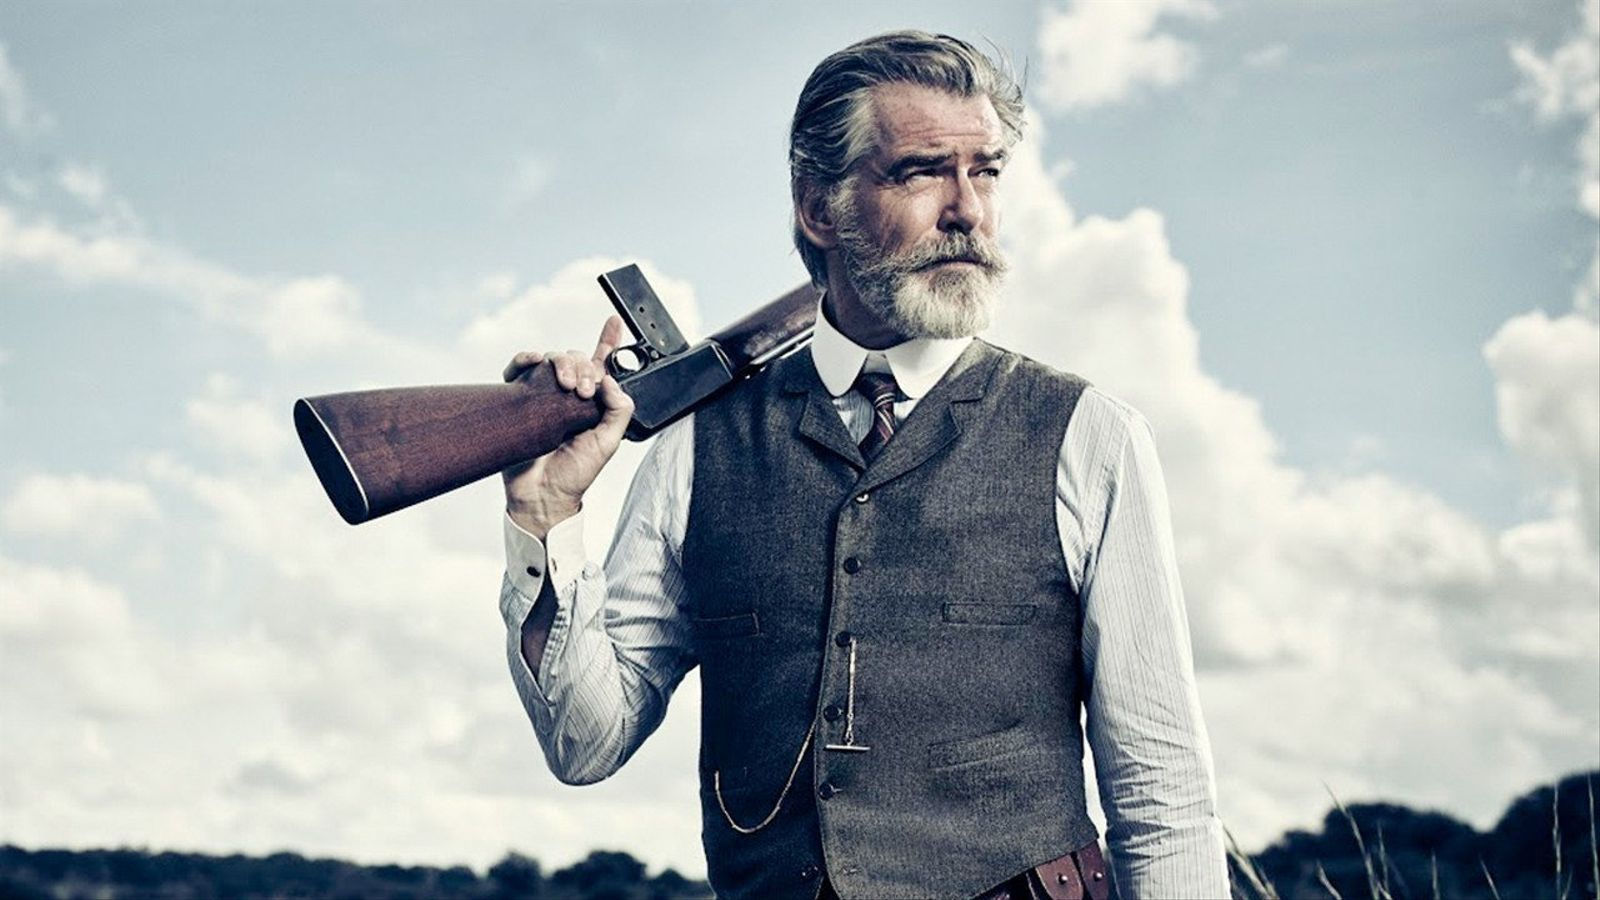 AMC estrena 'The son', la nova sèrie de Pierce Brosnan